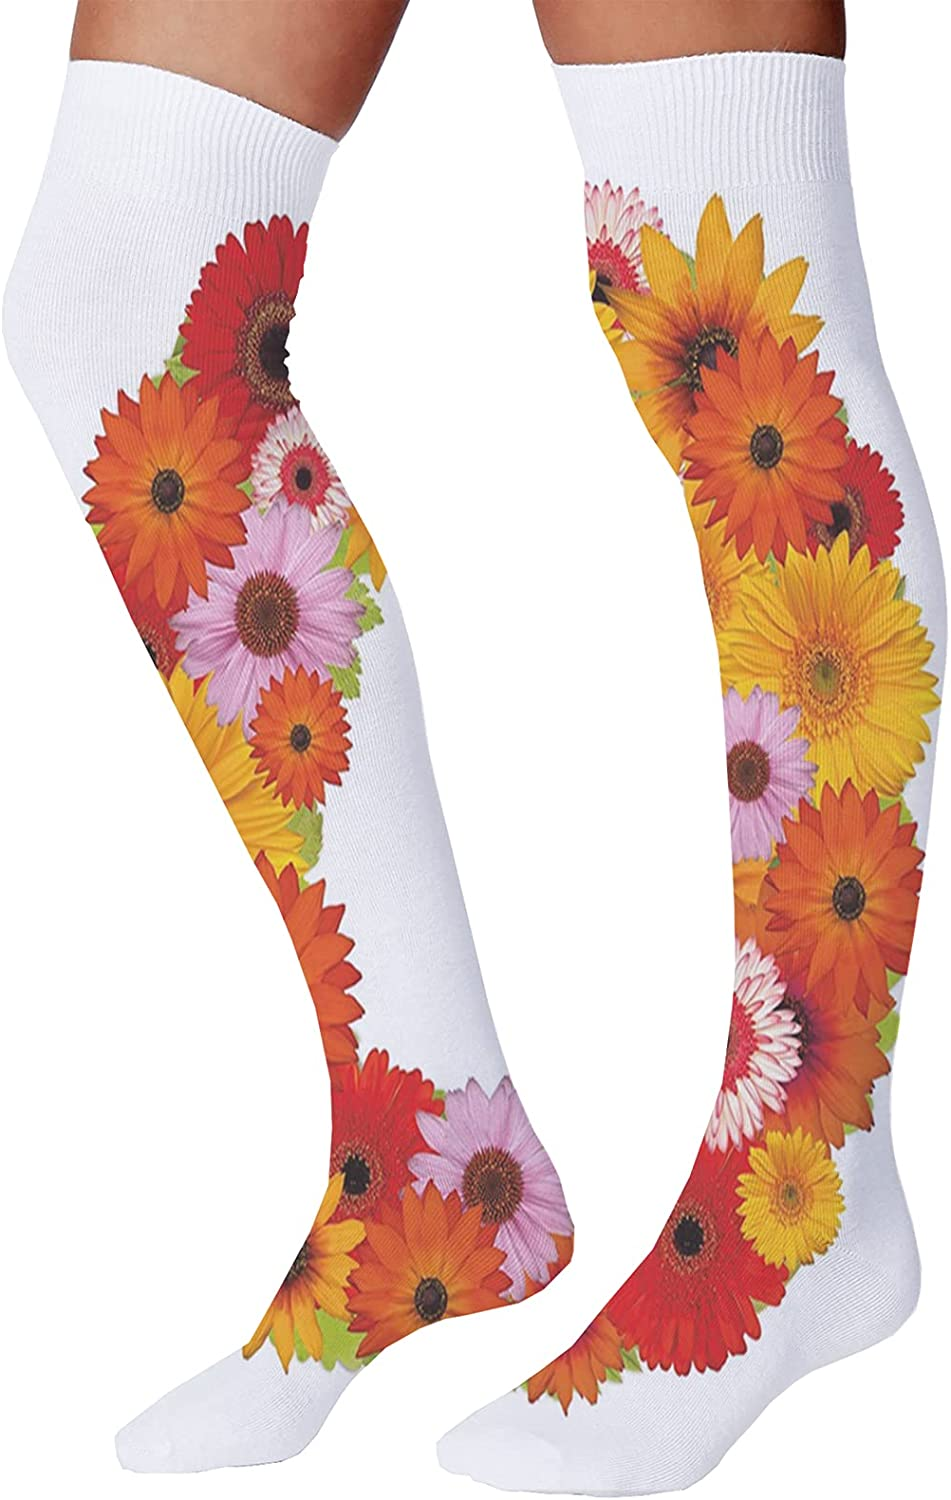 Men's and Women's Fun Socks,Alphabet Themed ABC of Natural World Letter O with Daisies Colors of The Summer